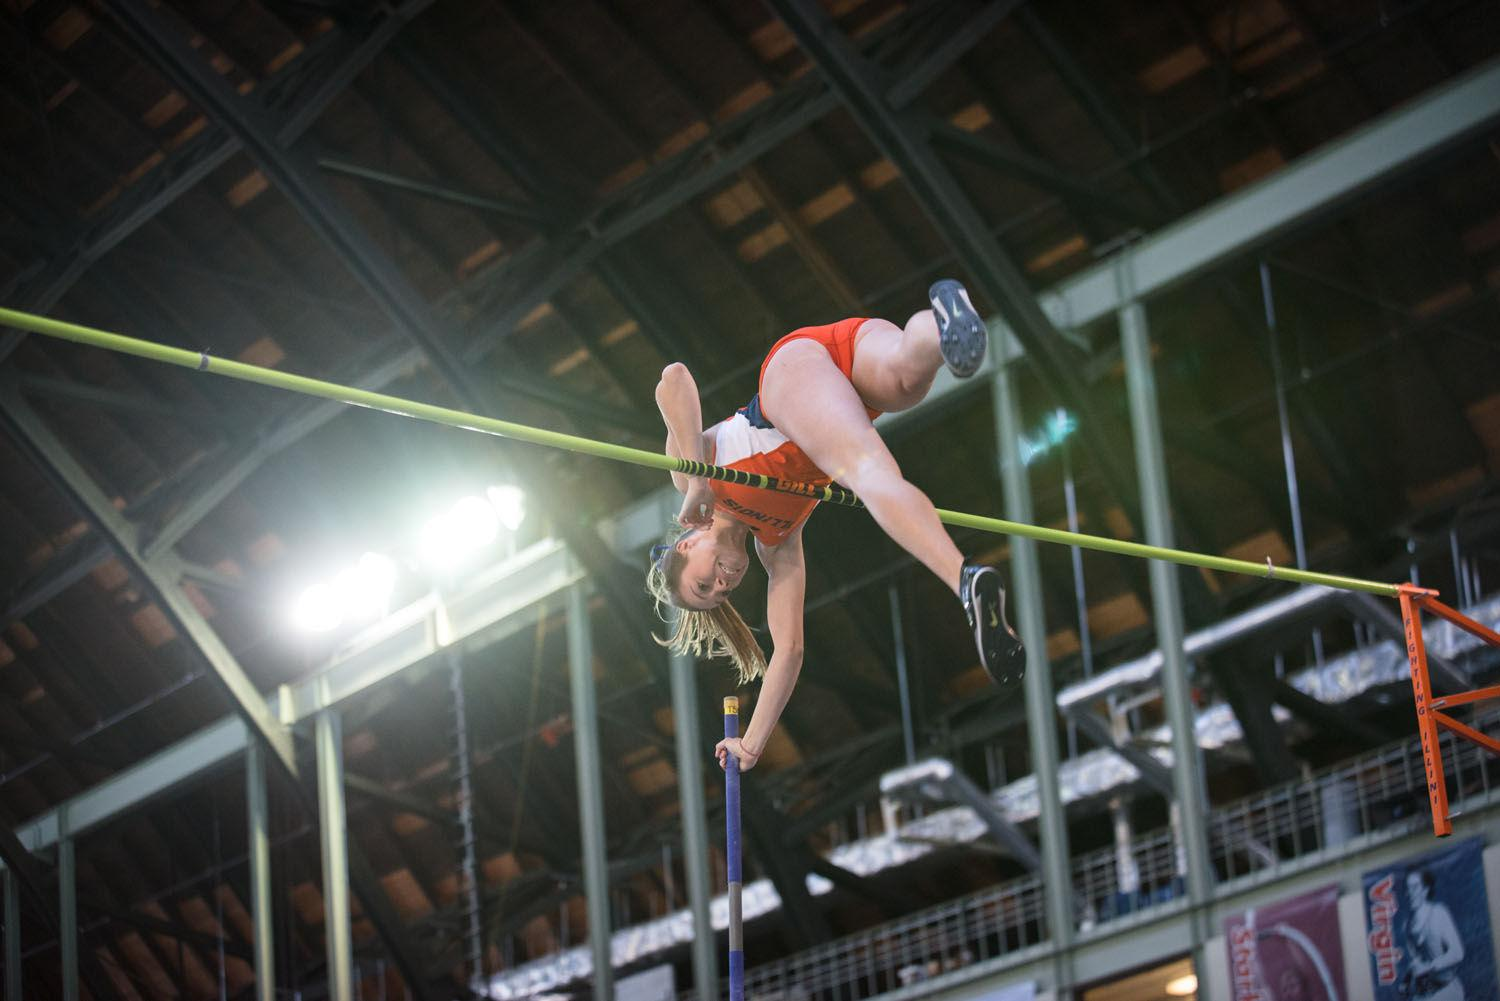 Stephanie Richartz releases the pole as she lifts past the bar to break her previous record with a height of 4.38 meters.